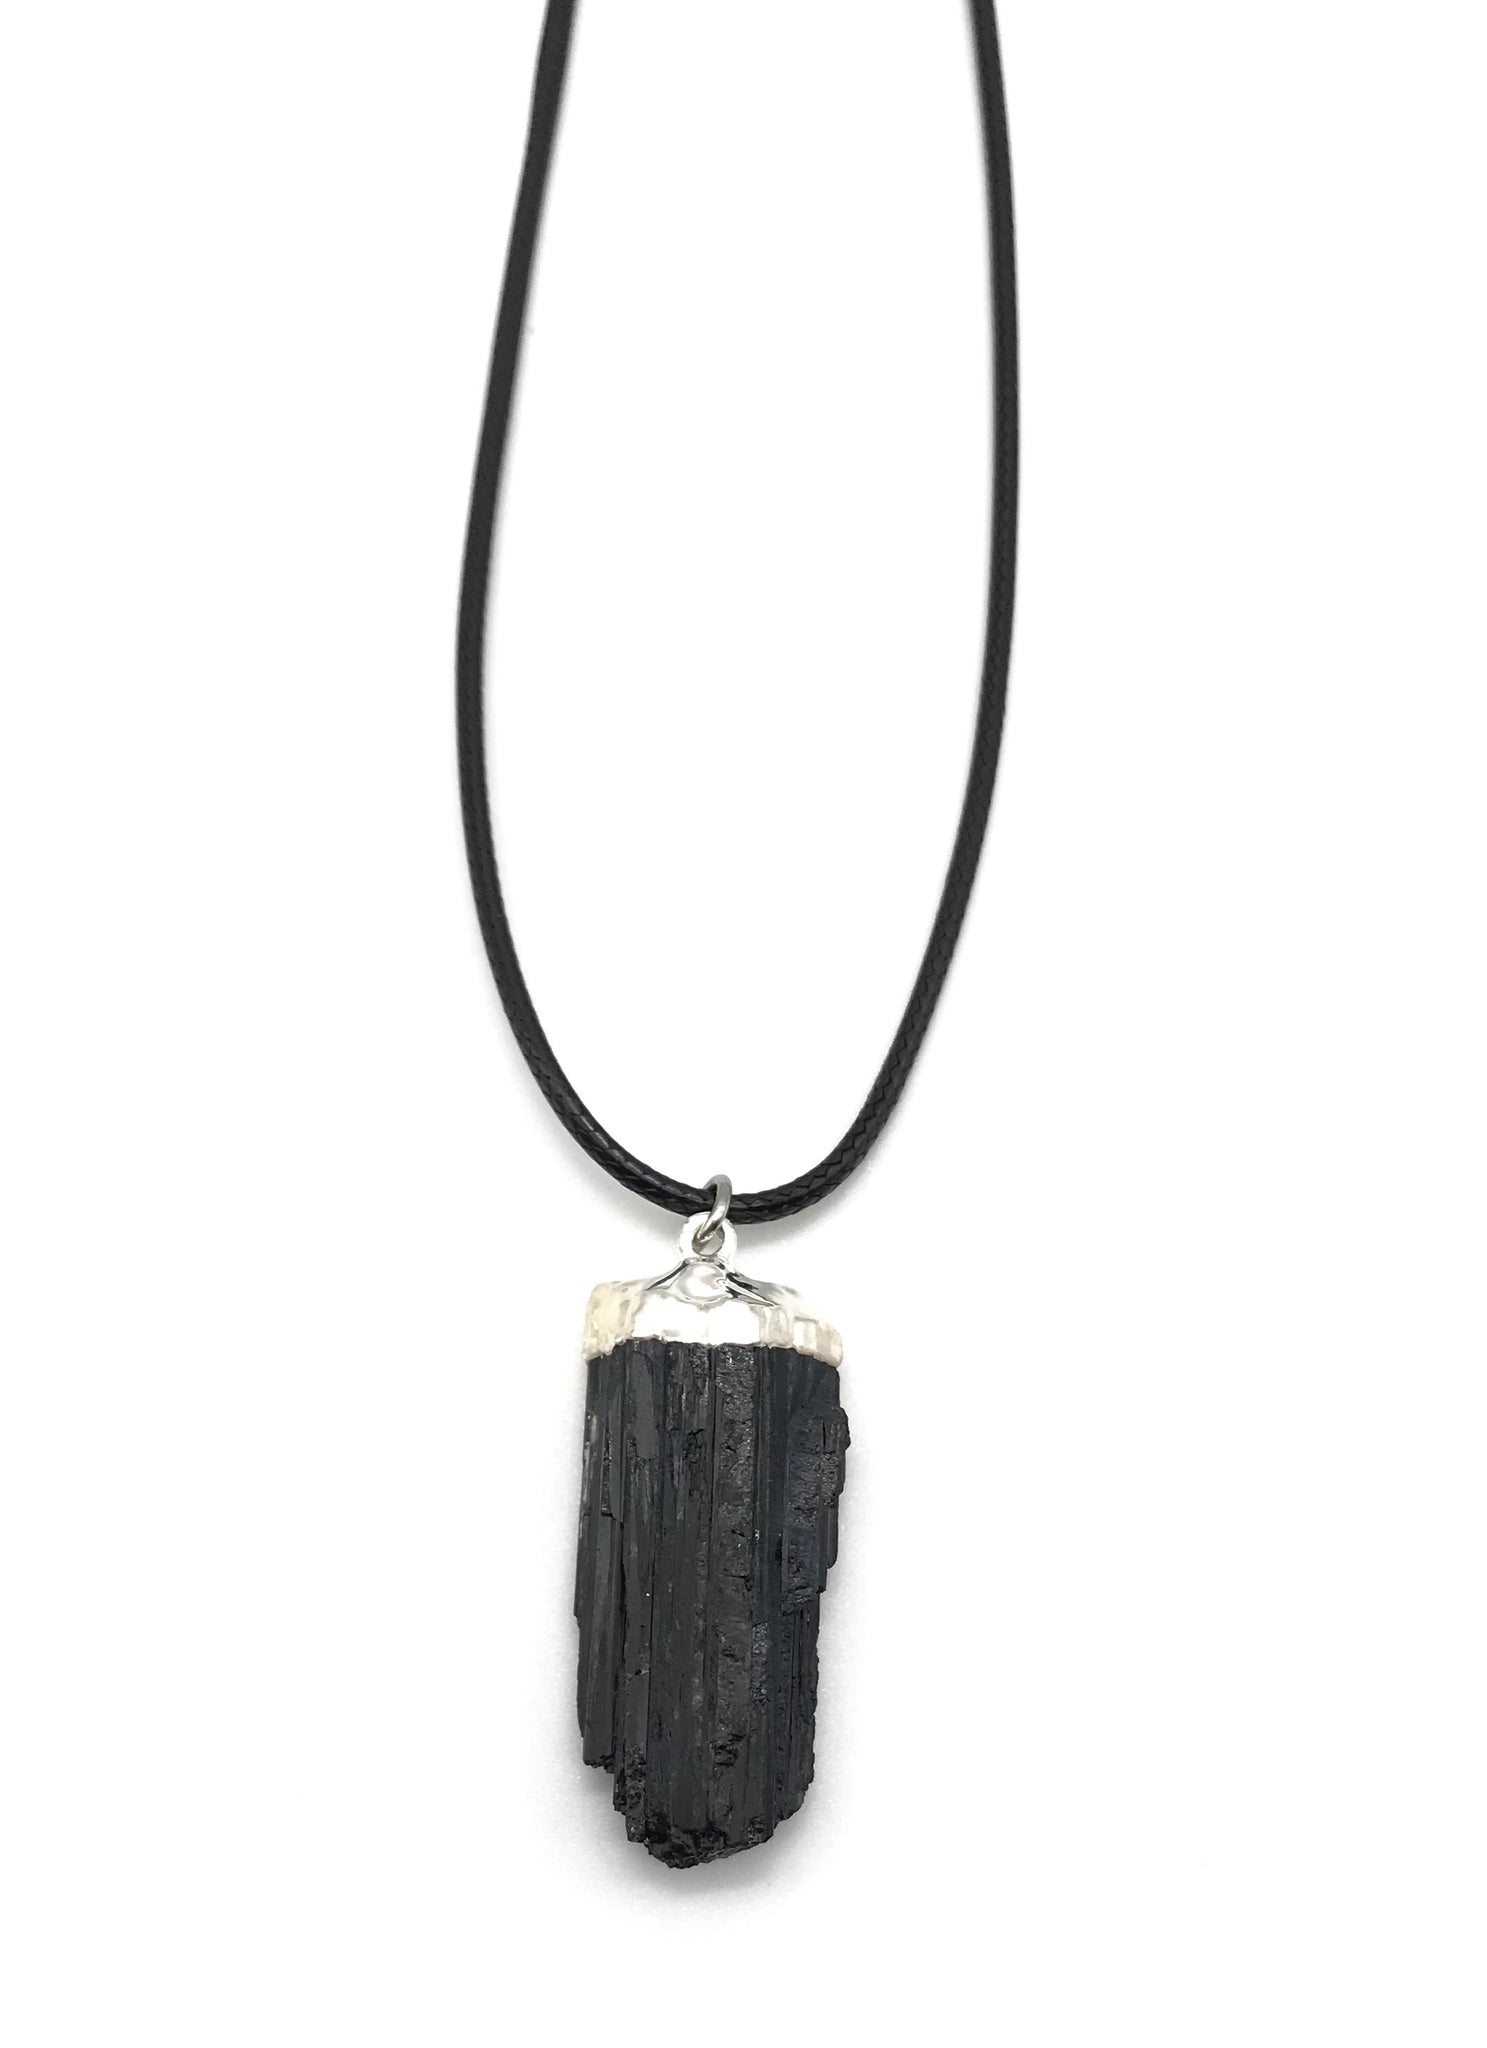 NATURAL GEMSTONE BLACK TOURMALINE HYPOALLERGENIC CORD NECKLACE 16 to 28 INCHES UNISEX